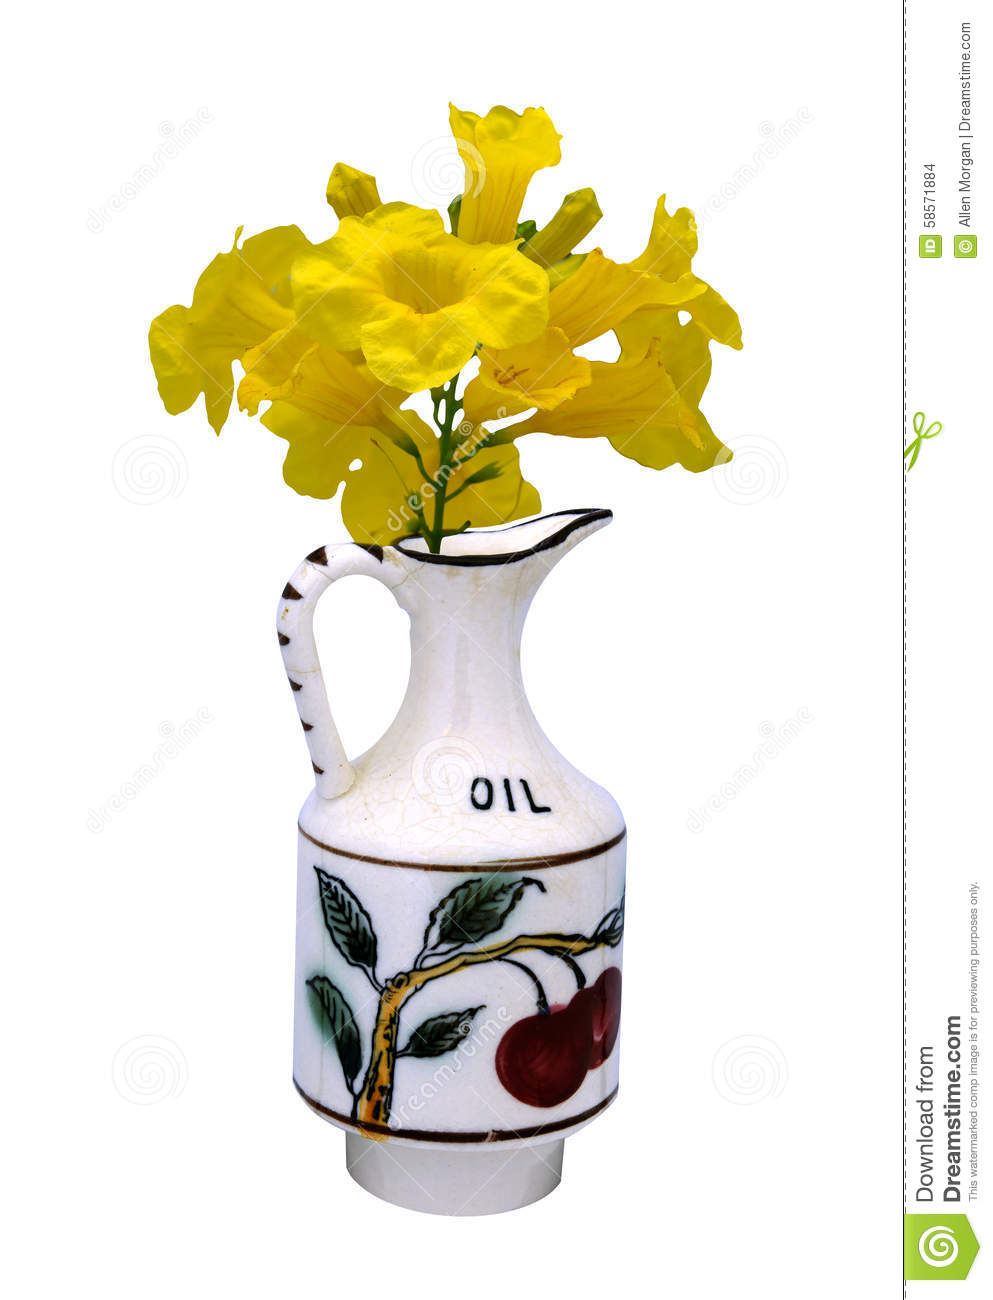 Antique Vase Hand Painted 1800 Stock Photo Image 58571884